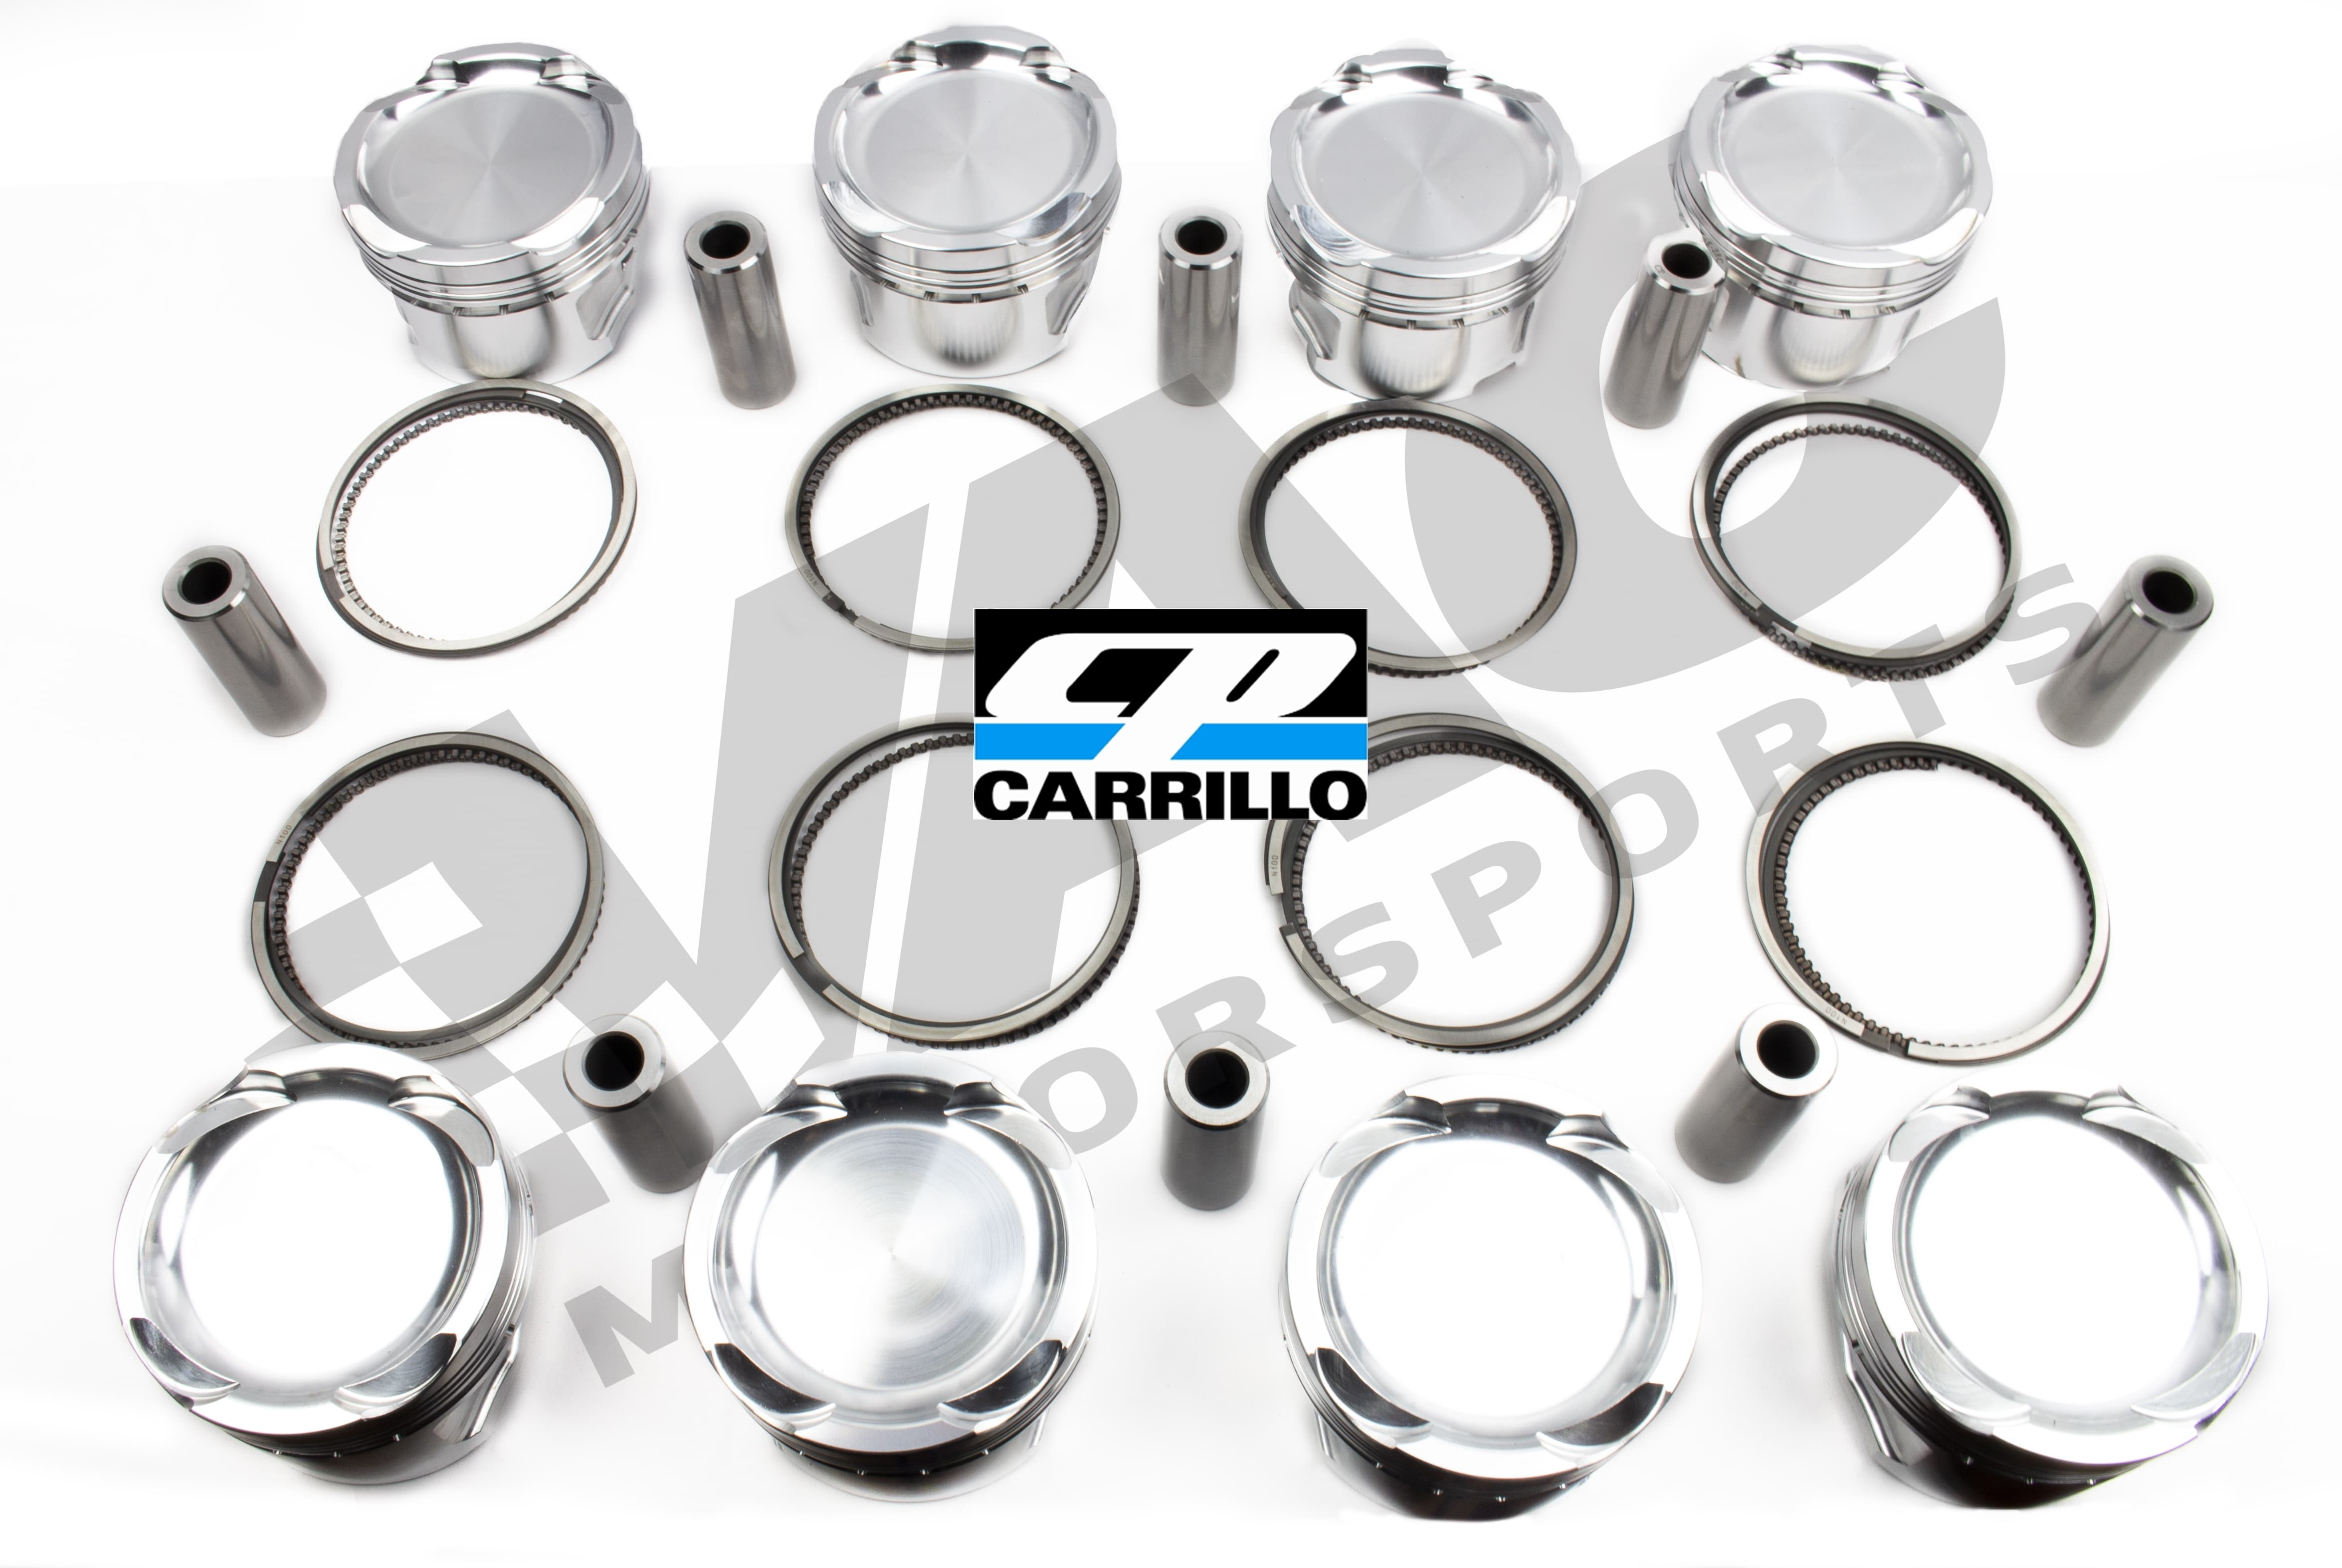 CP-Carrillo Forged Piston Set (Sleeved BMW S65 Stroker) THUMBNAIL